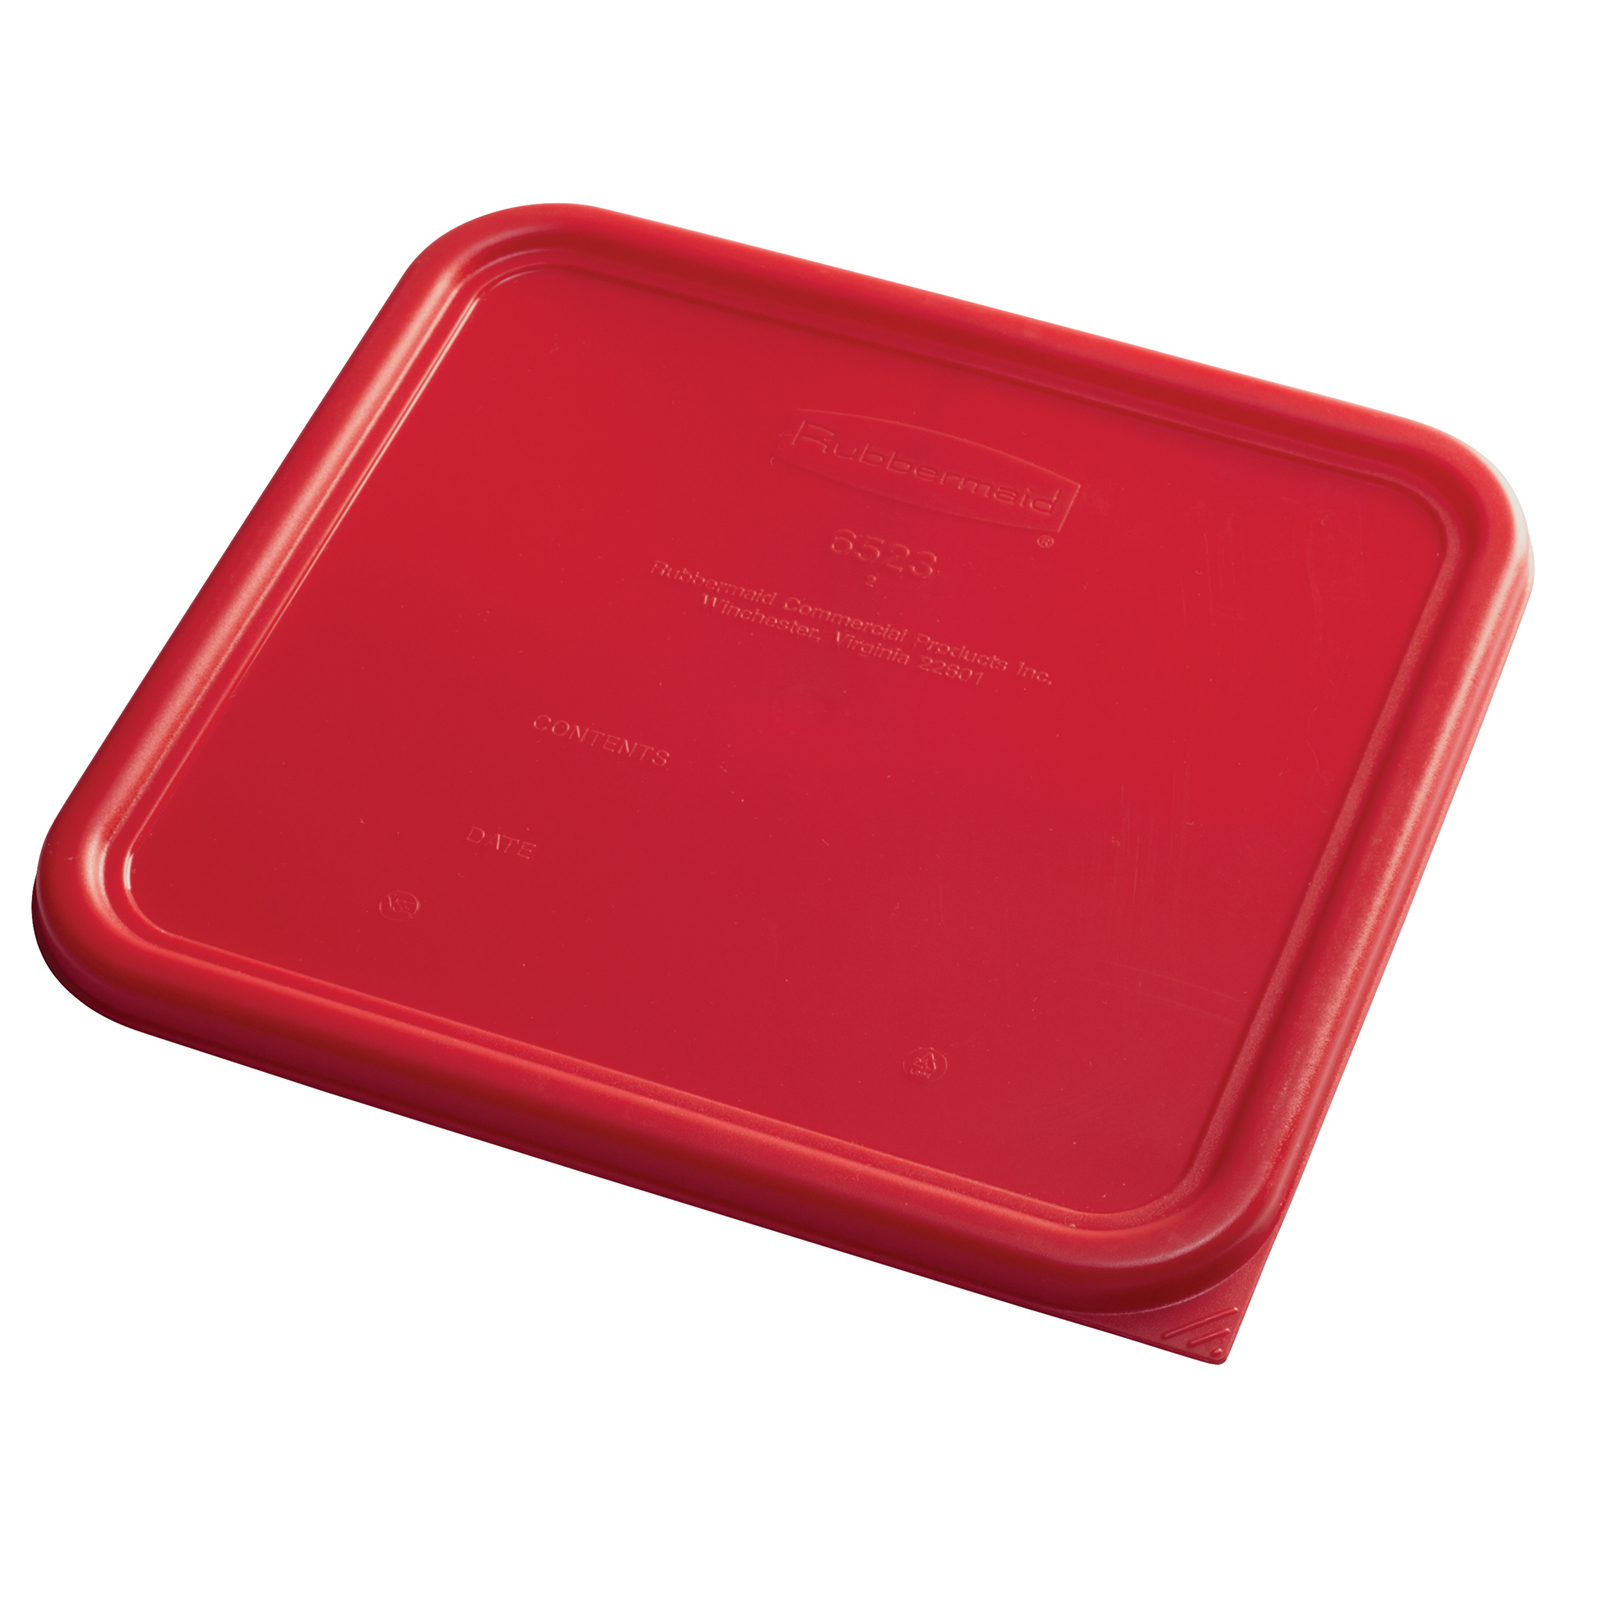 Rubbermaid Commercial Products 1980307 food storage container cover